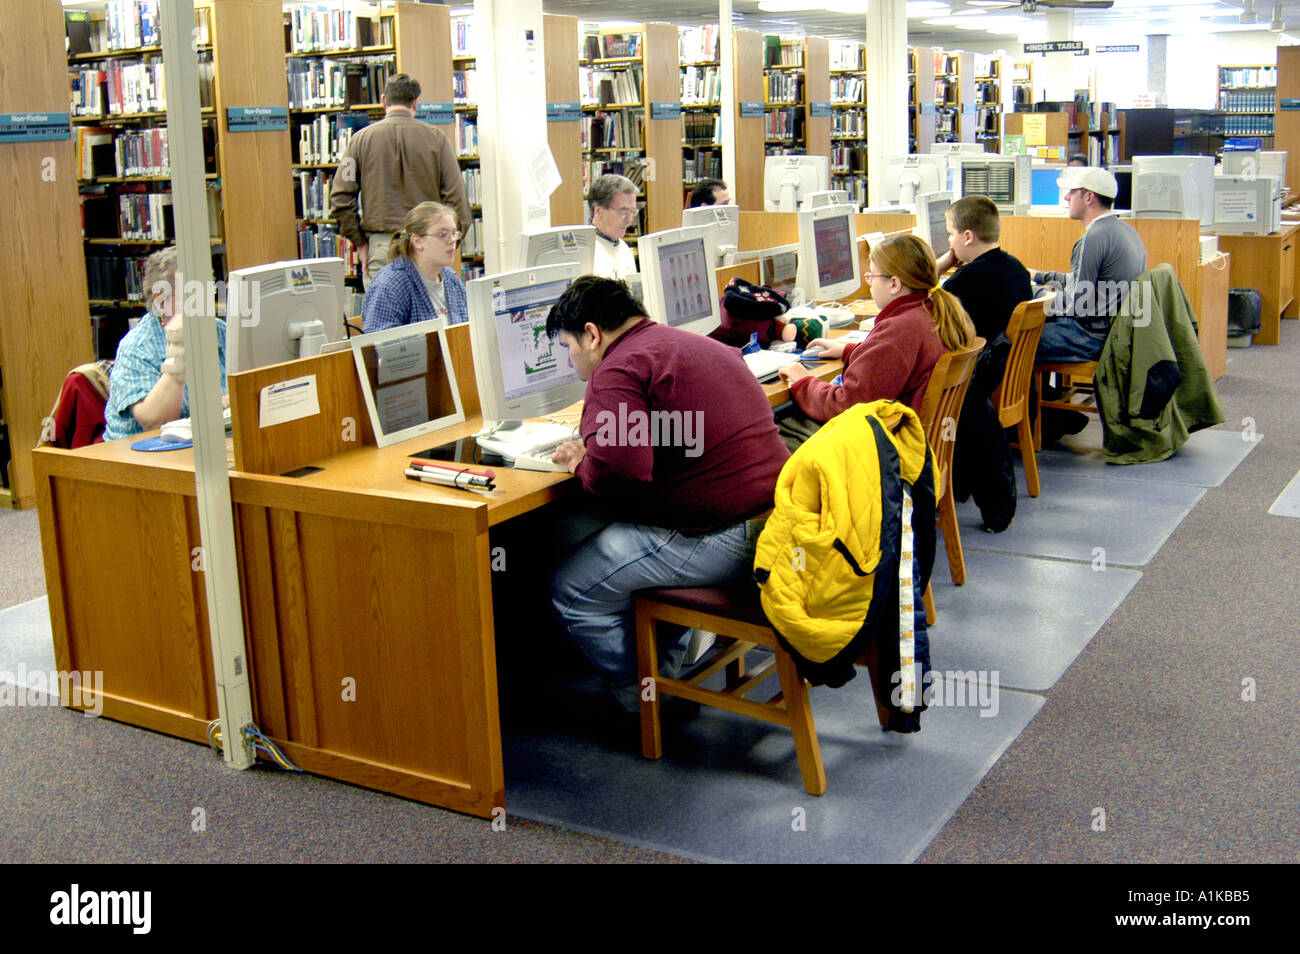 Adults use free internet services at a public library Stock Photo